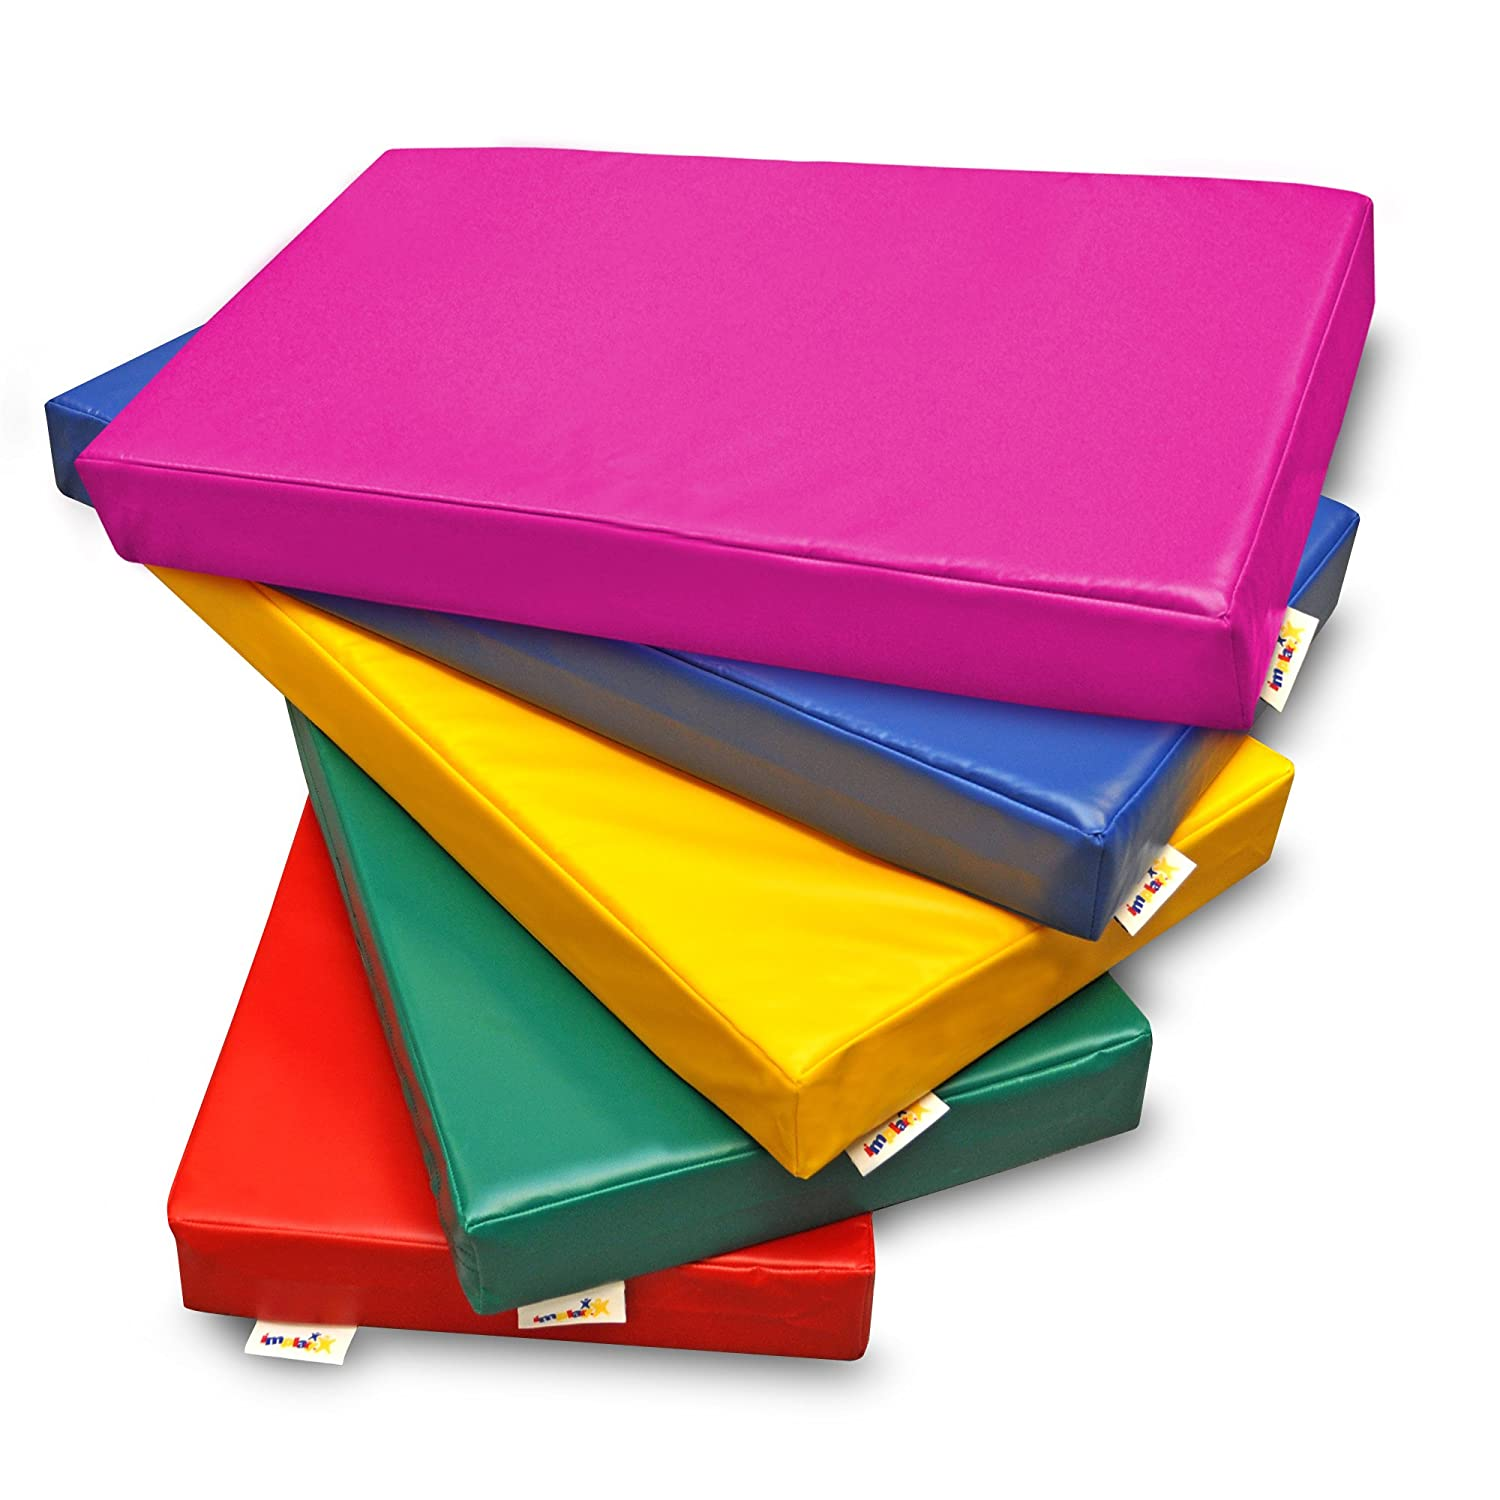 Implay Soft Play Gymnastic Landing Crash Mat 610gsm PVC High